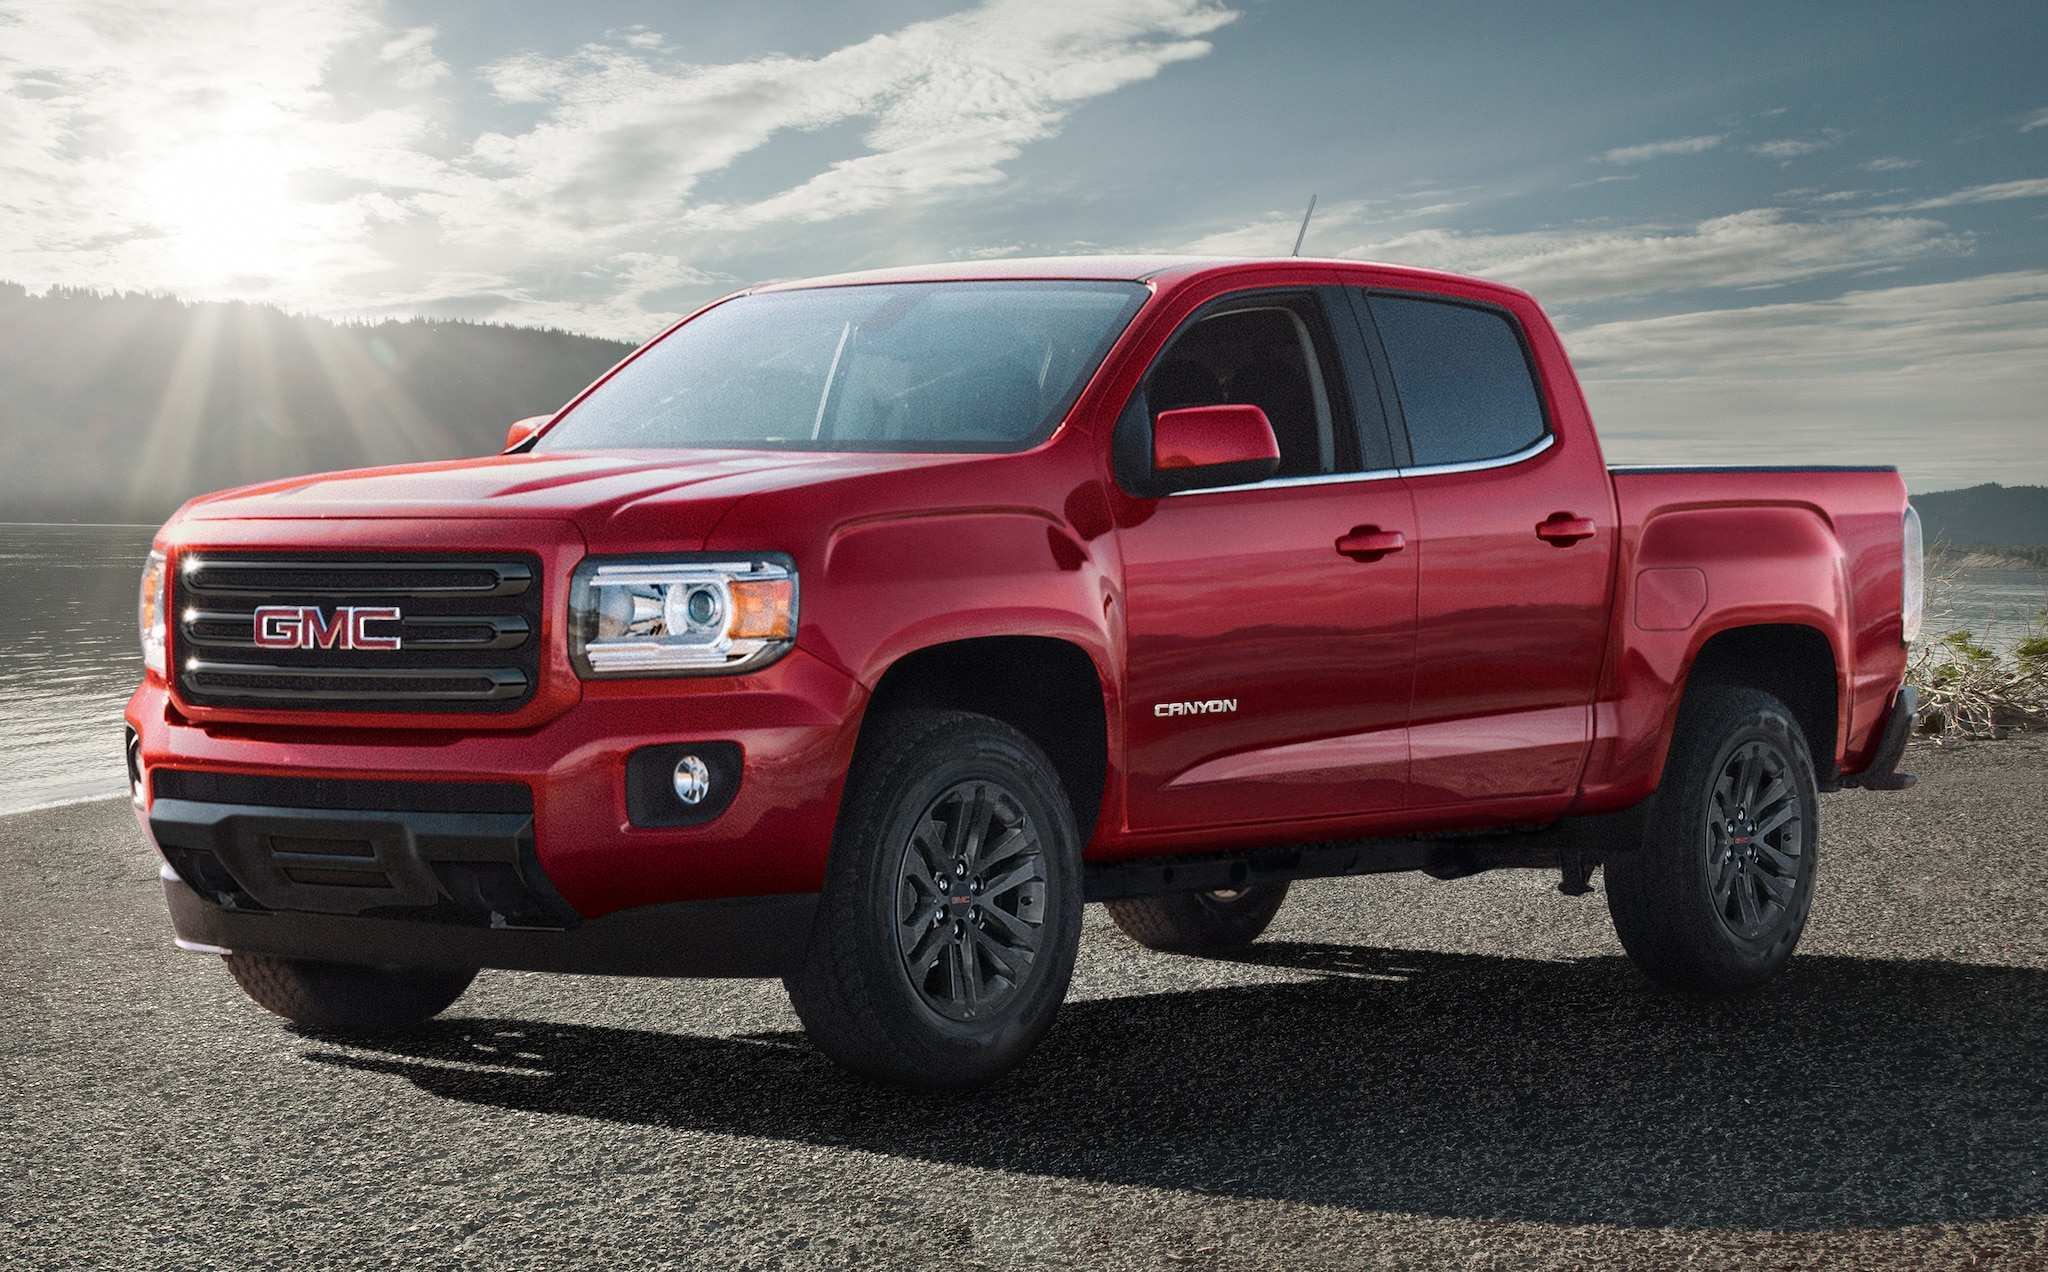 64 All New 2019 Gmc Elevation Edition Engine